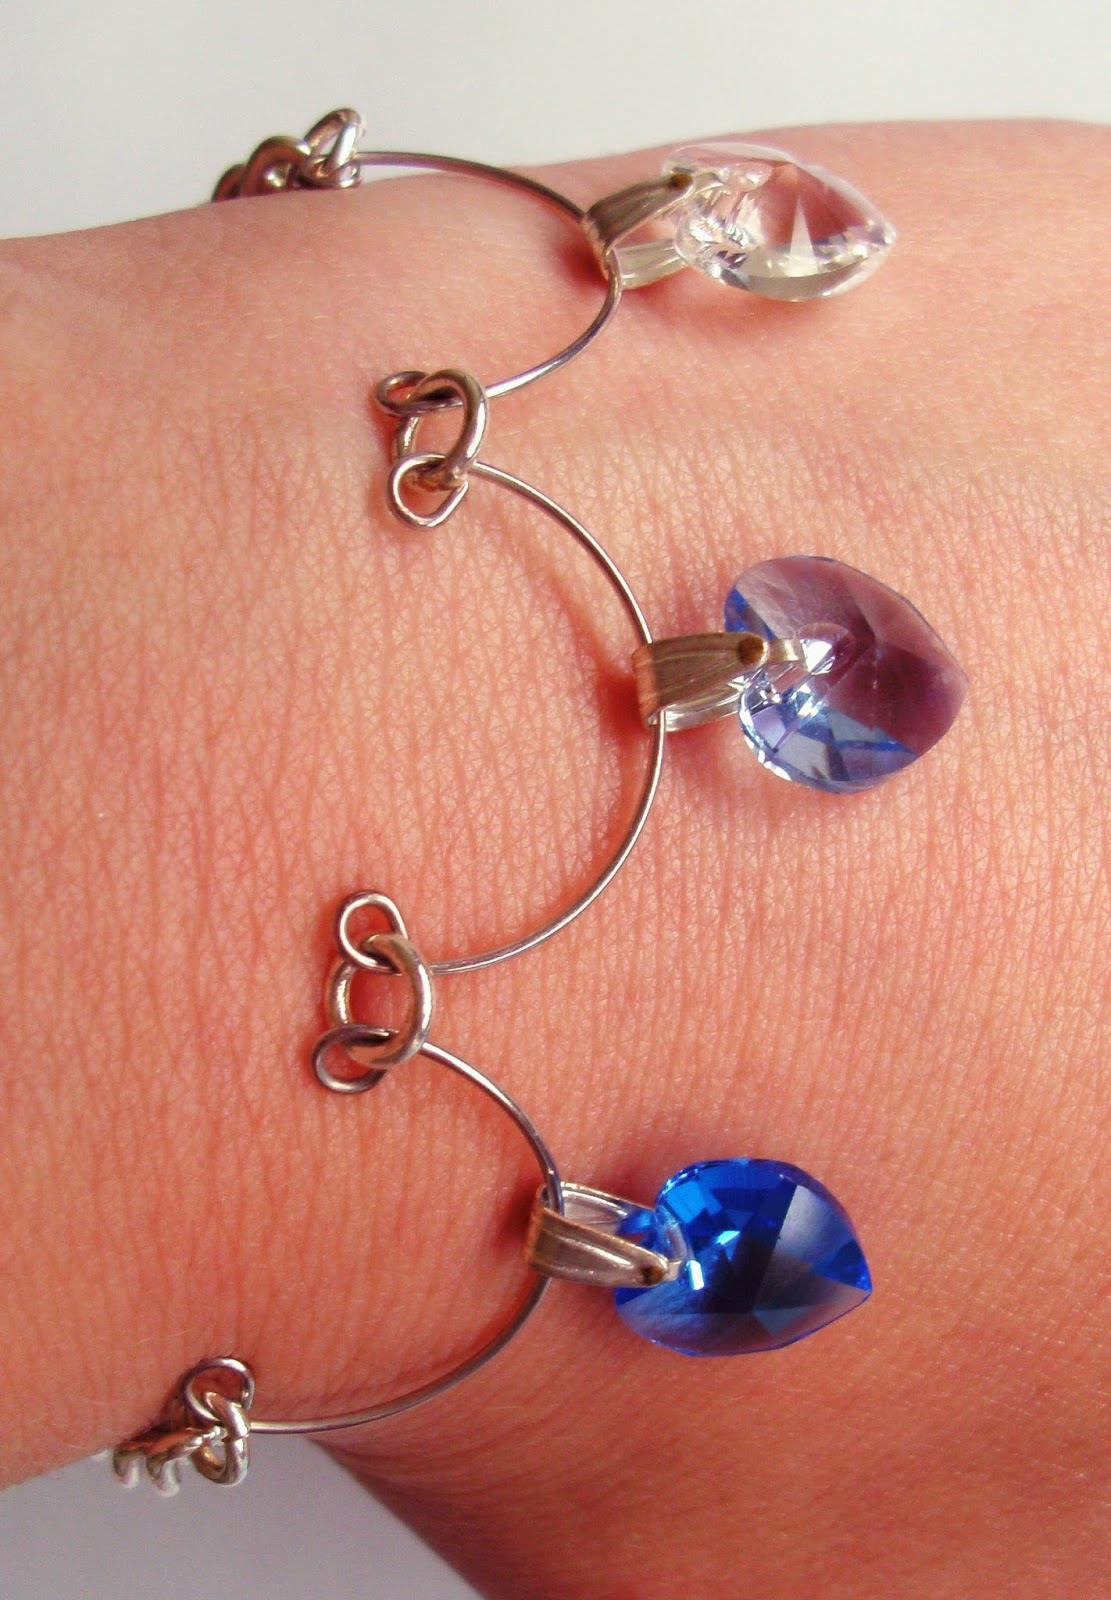 Kimberley Wilson Three Hearts of Love Bracelet Blue Hearts Stirling Silver